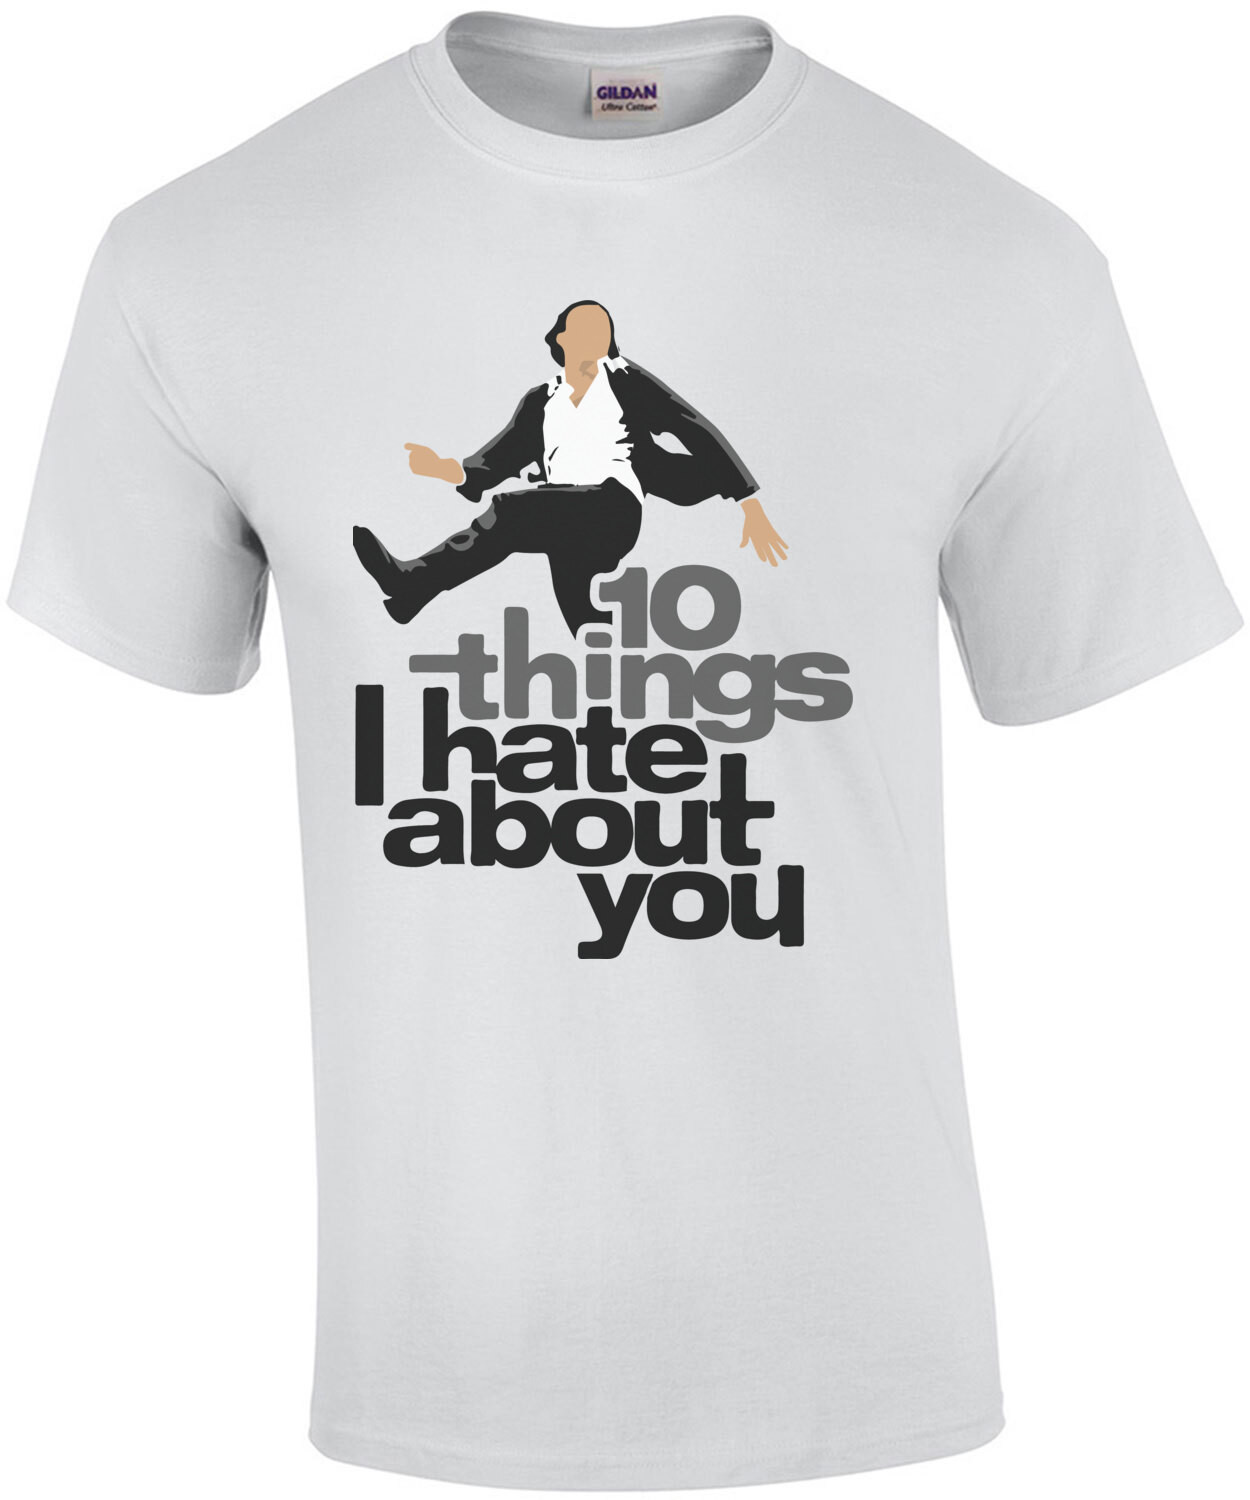 10 Things I hate about you - 90's T-Shirt